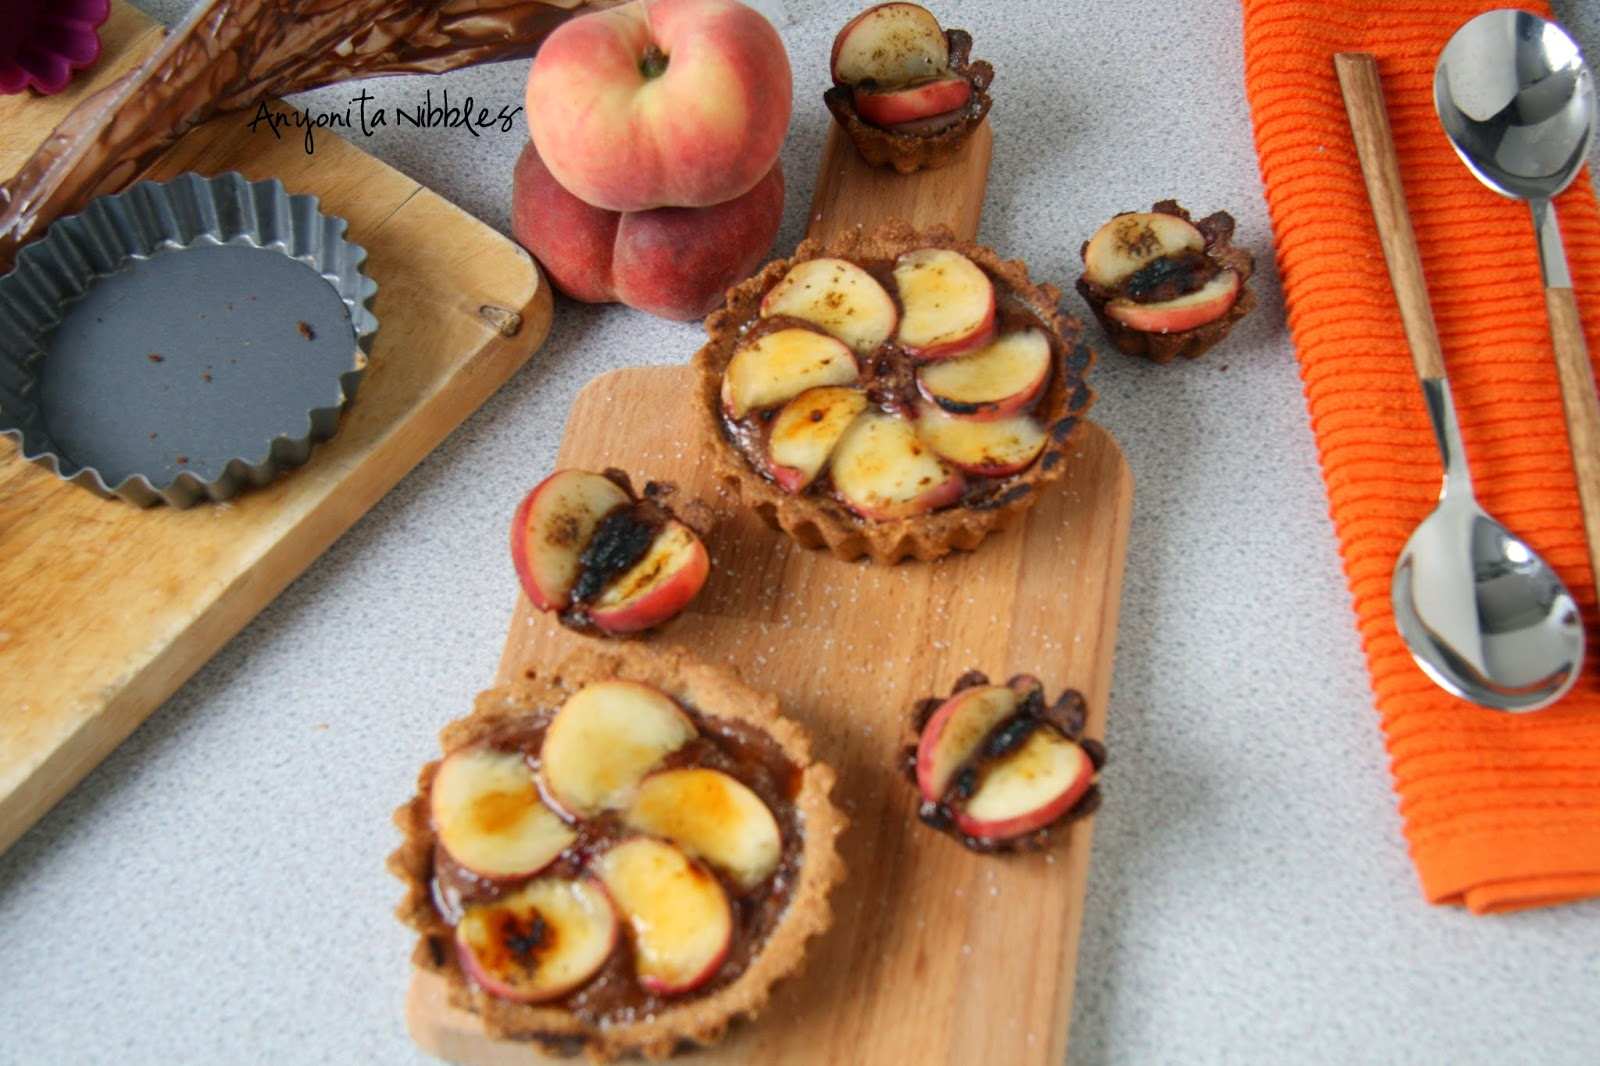 Brûléed Peach & Nutella Tarts & Materials by Anyonita Nibbles